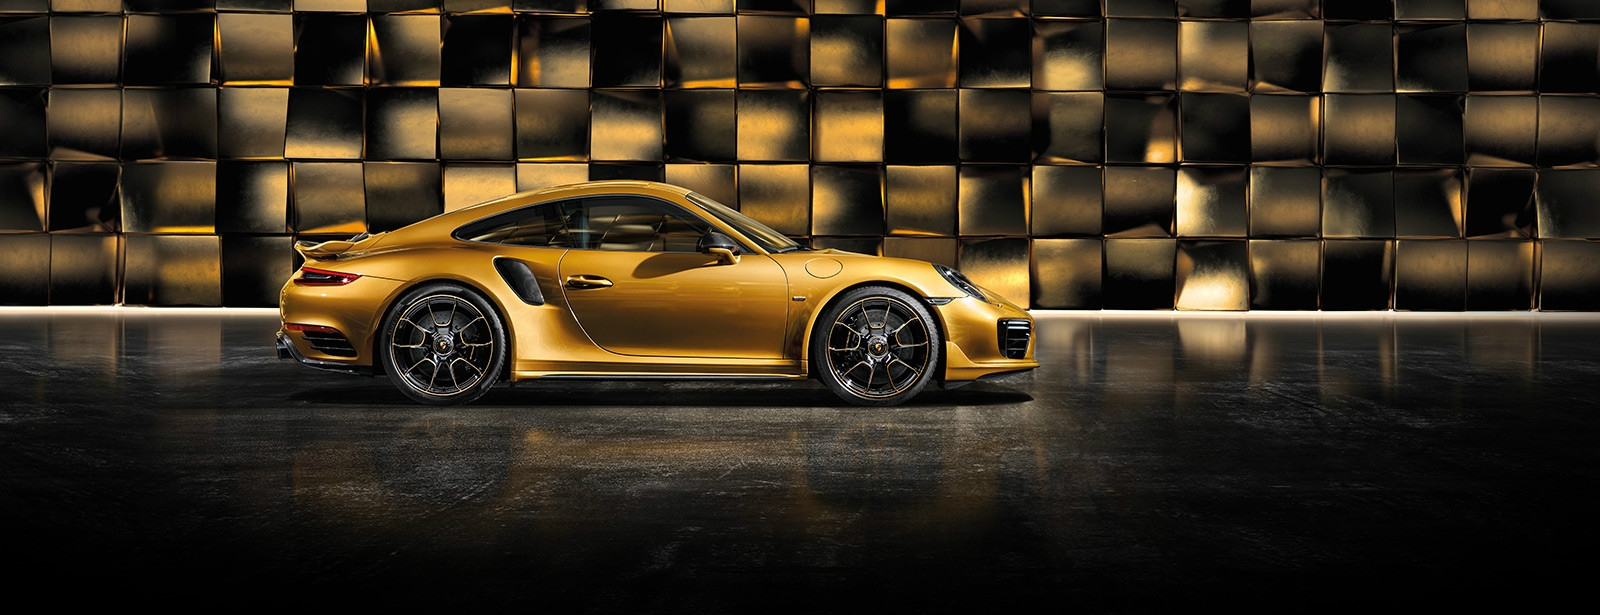 Porsche - 911 Turbo S Exclusive Series -